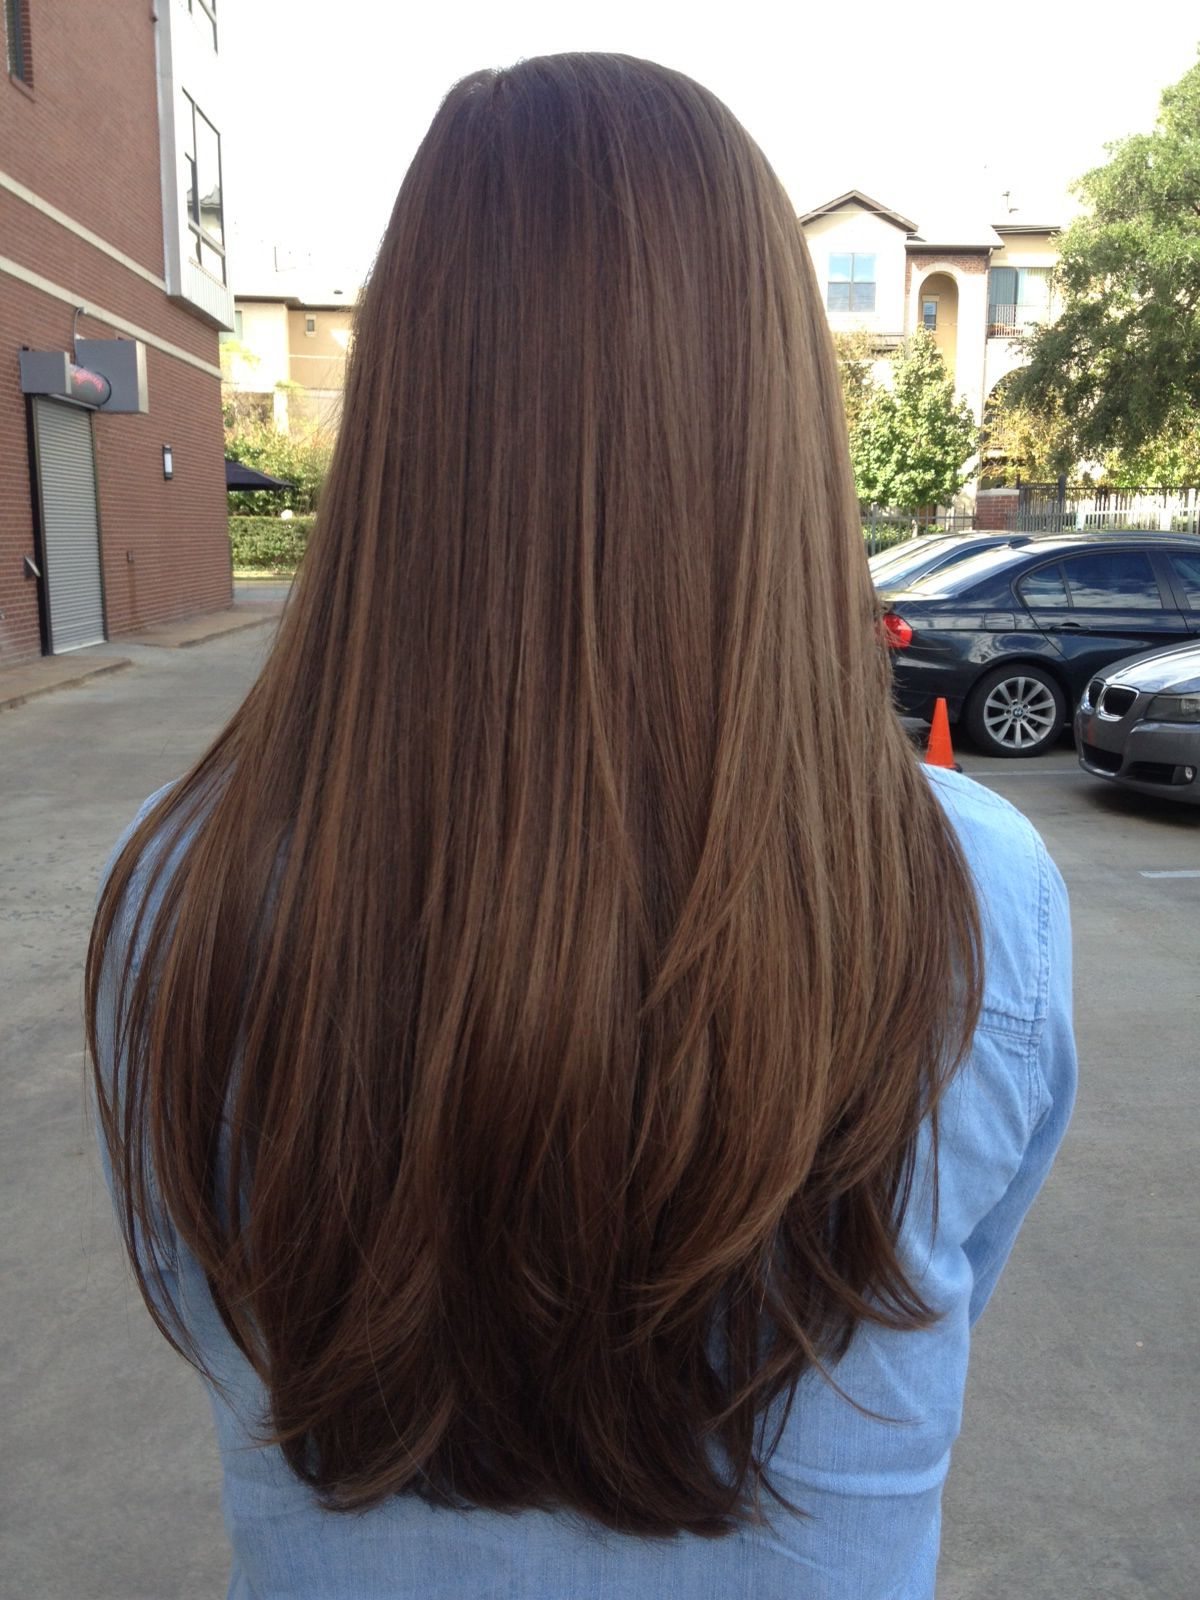 How To Grow Long Beautiful Hair – Long Hair Growth Tips